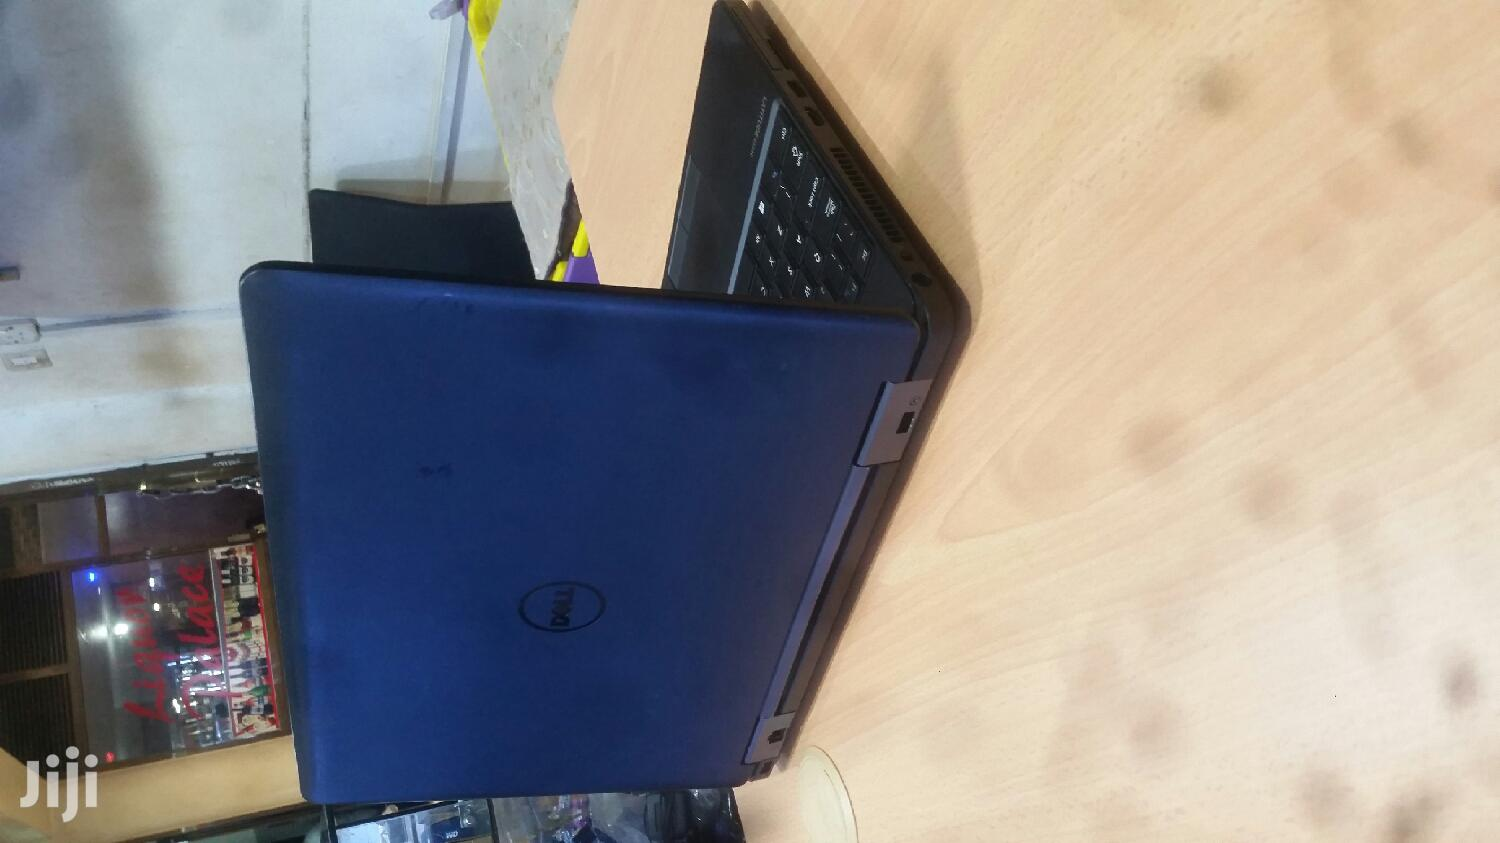 Laptop Dell Latitude 15 E5540 8GB Intel Core I5 HDD 500GB | Laptops & Computers for sale in Wakiso, Central Region, Uganda